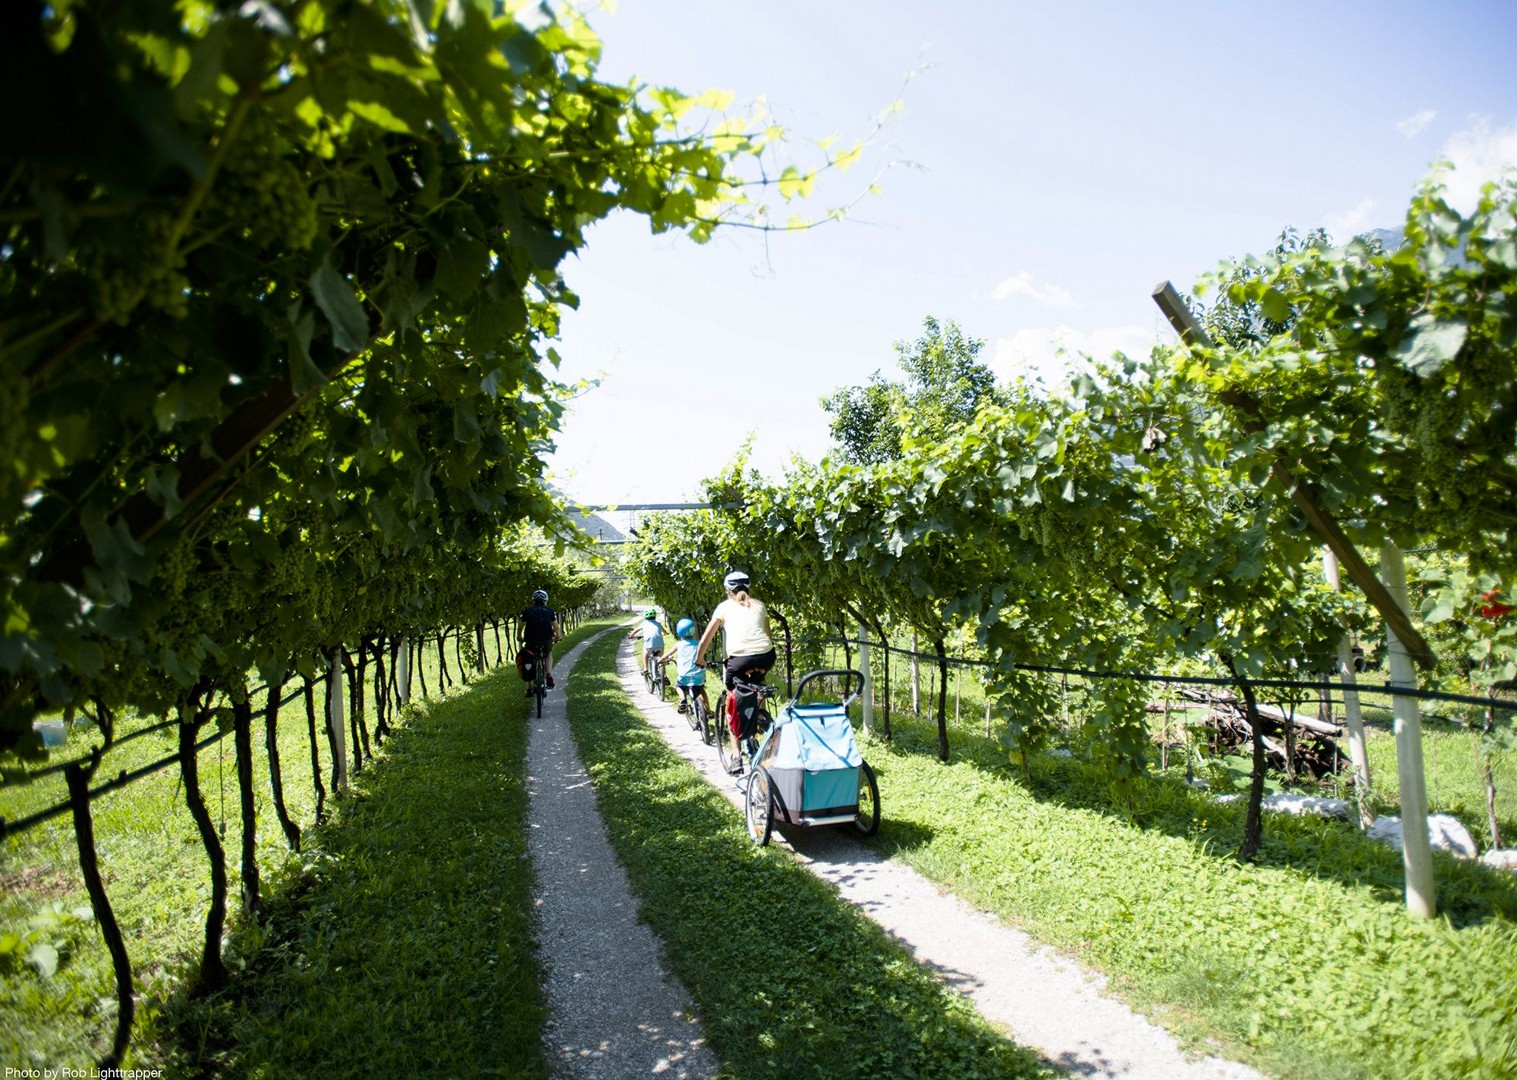 vineyard-italy-cycling-self-guided.jpg - Italy - Lake Garda Explorer - Self-Guided Family Cycling Holiday - Family Cycling